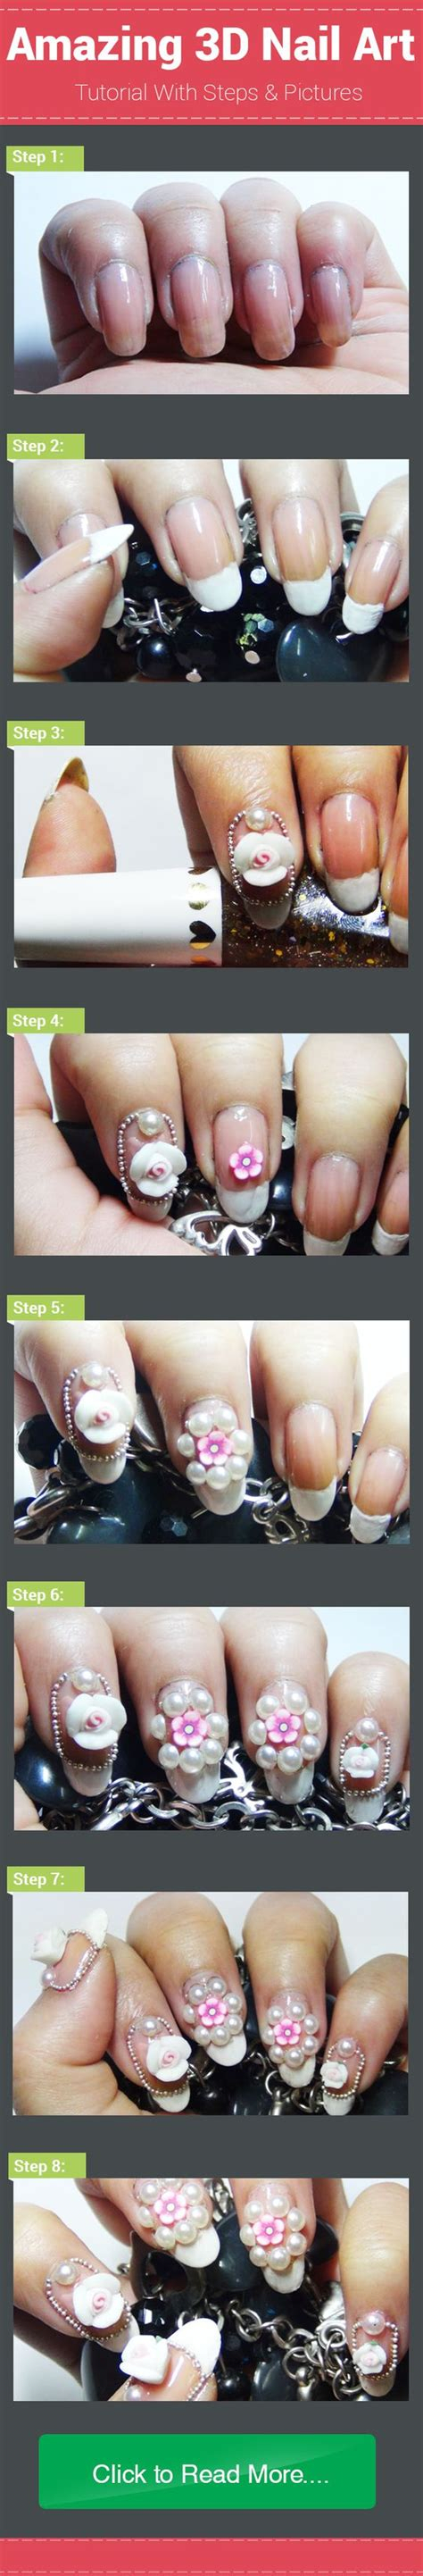 3d nail art video tutorial how to do 3d nail art perfectly 2 simple 3d nail